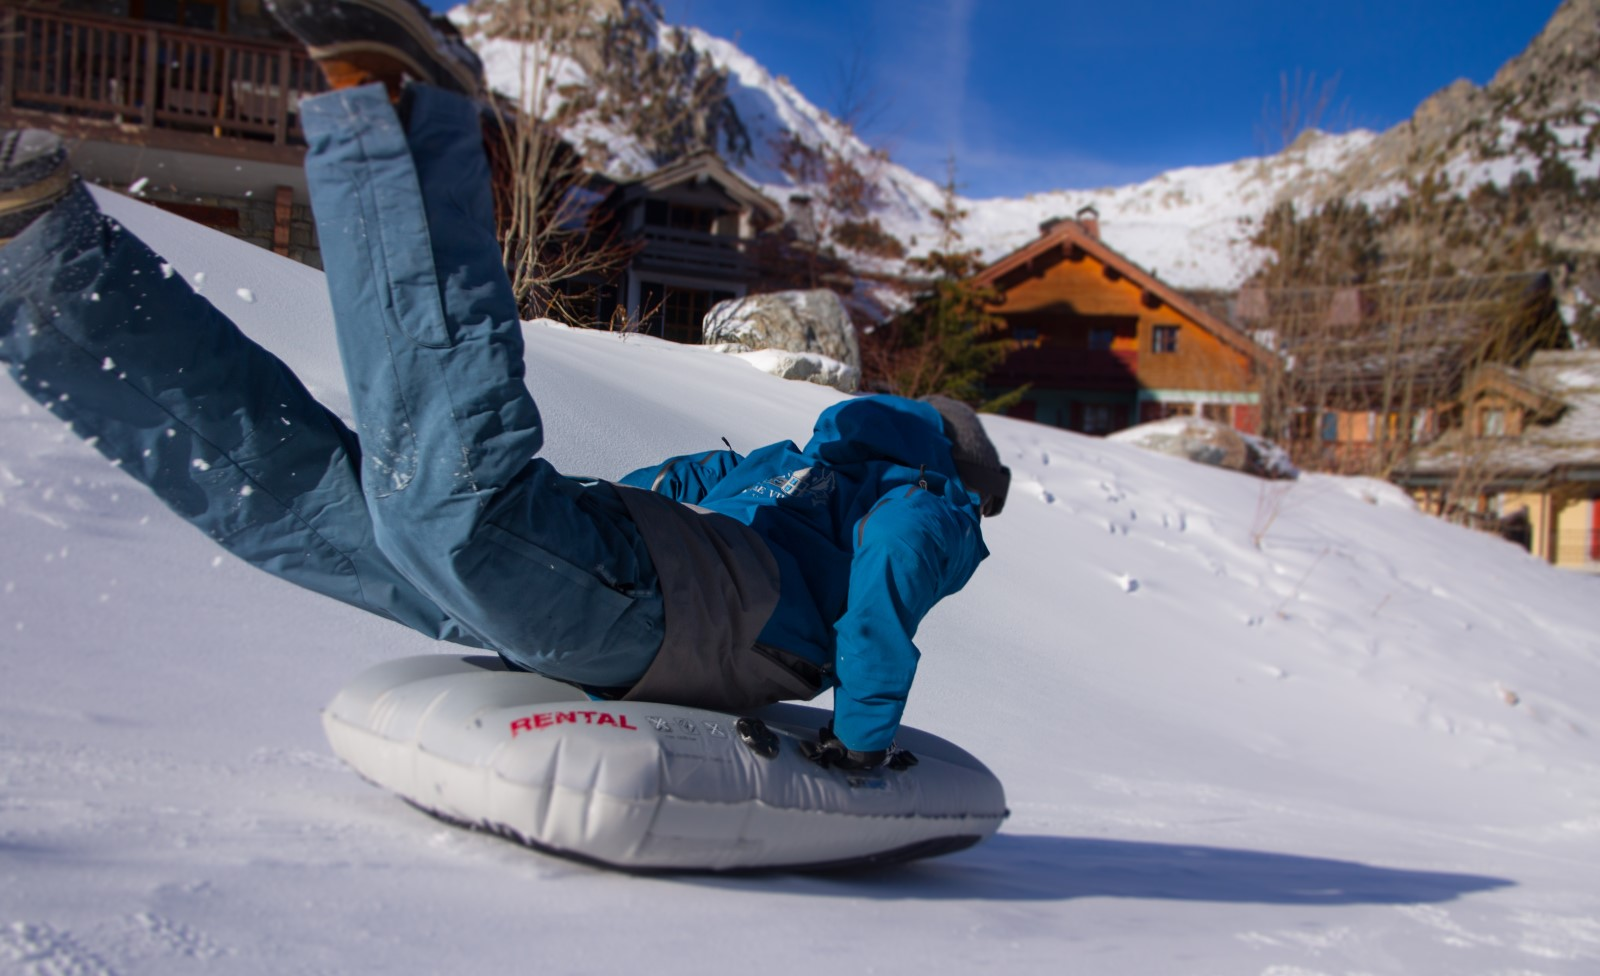 Luges Airboard Party - Make My Day Pierre et Vacances